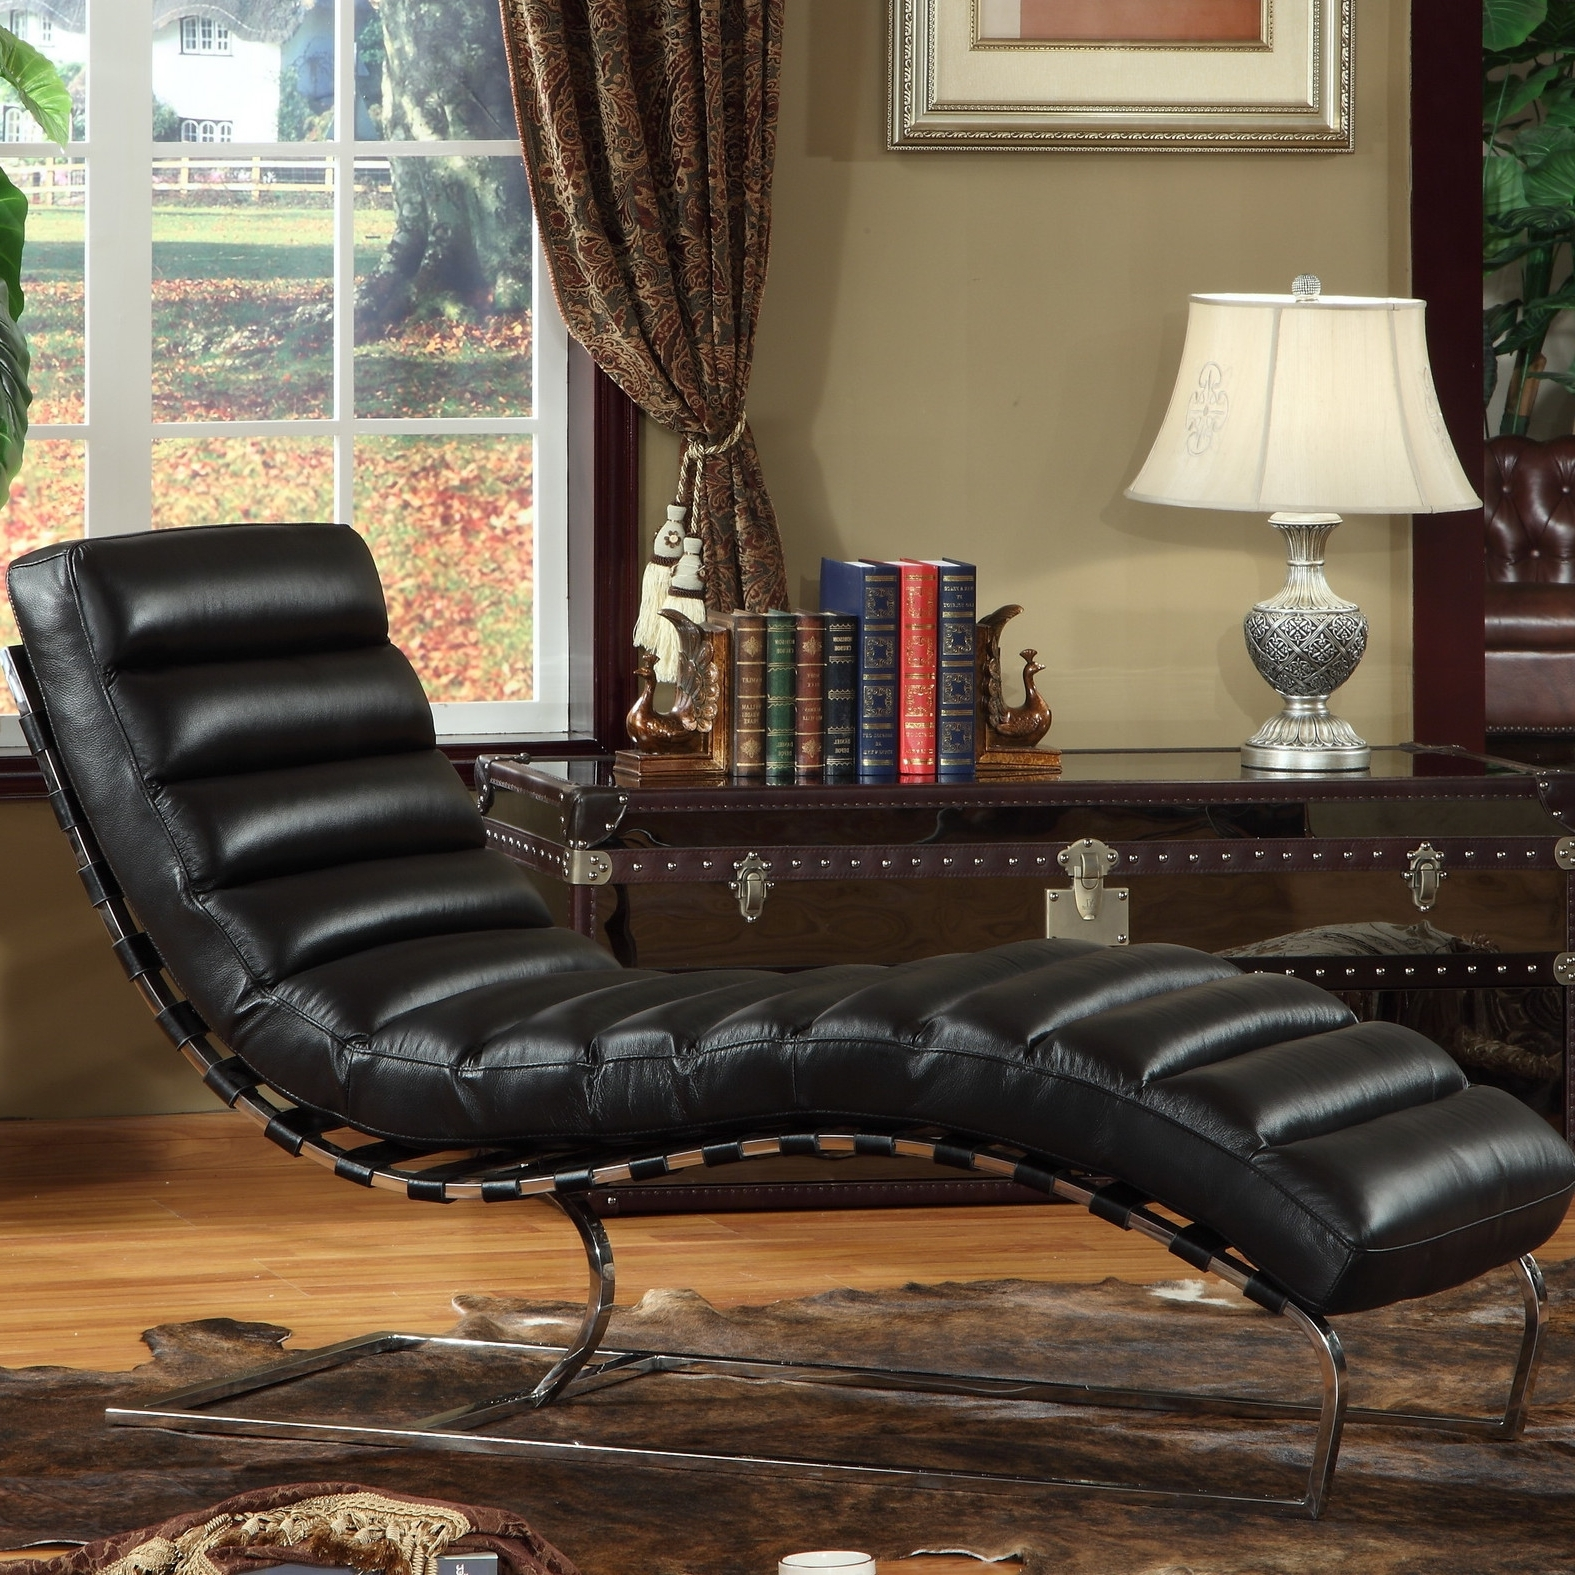 Most Recent Beautiful Leather Chaise Lounge Chair — Lustwithalaugh Design Inside Leather Chaise Lounges (View 13 of 15)